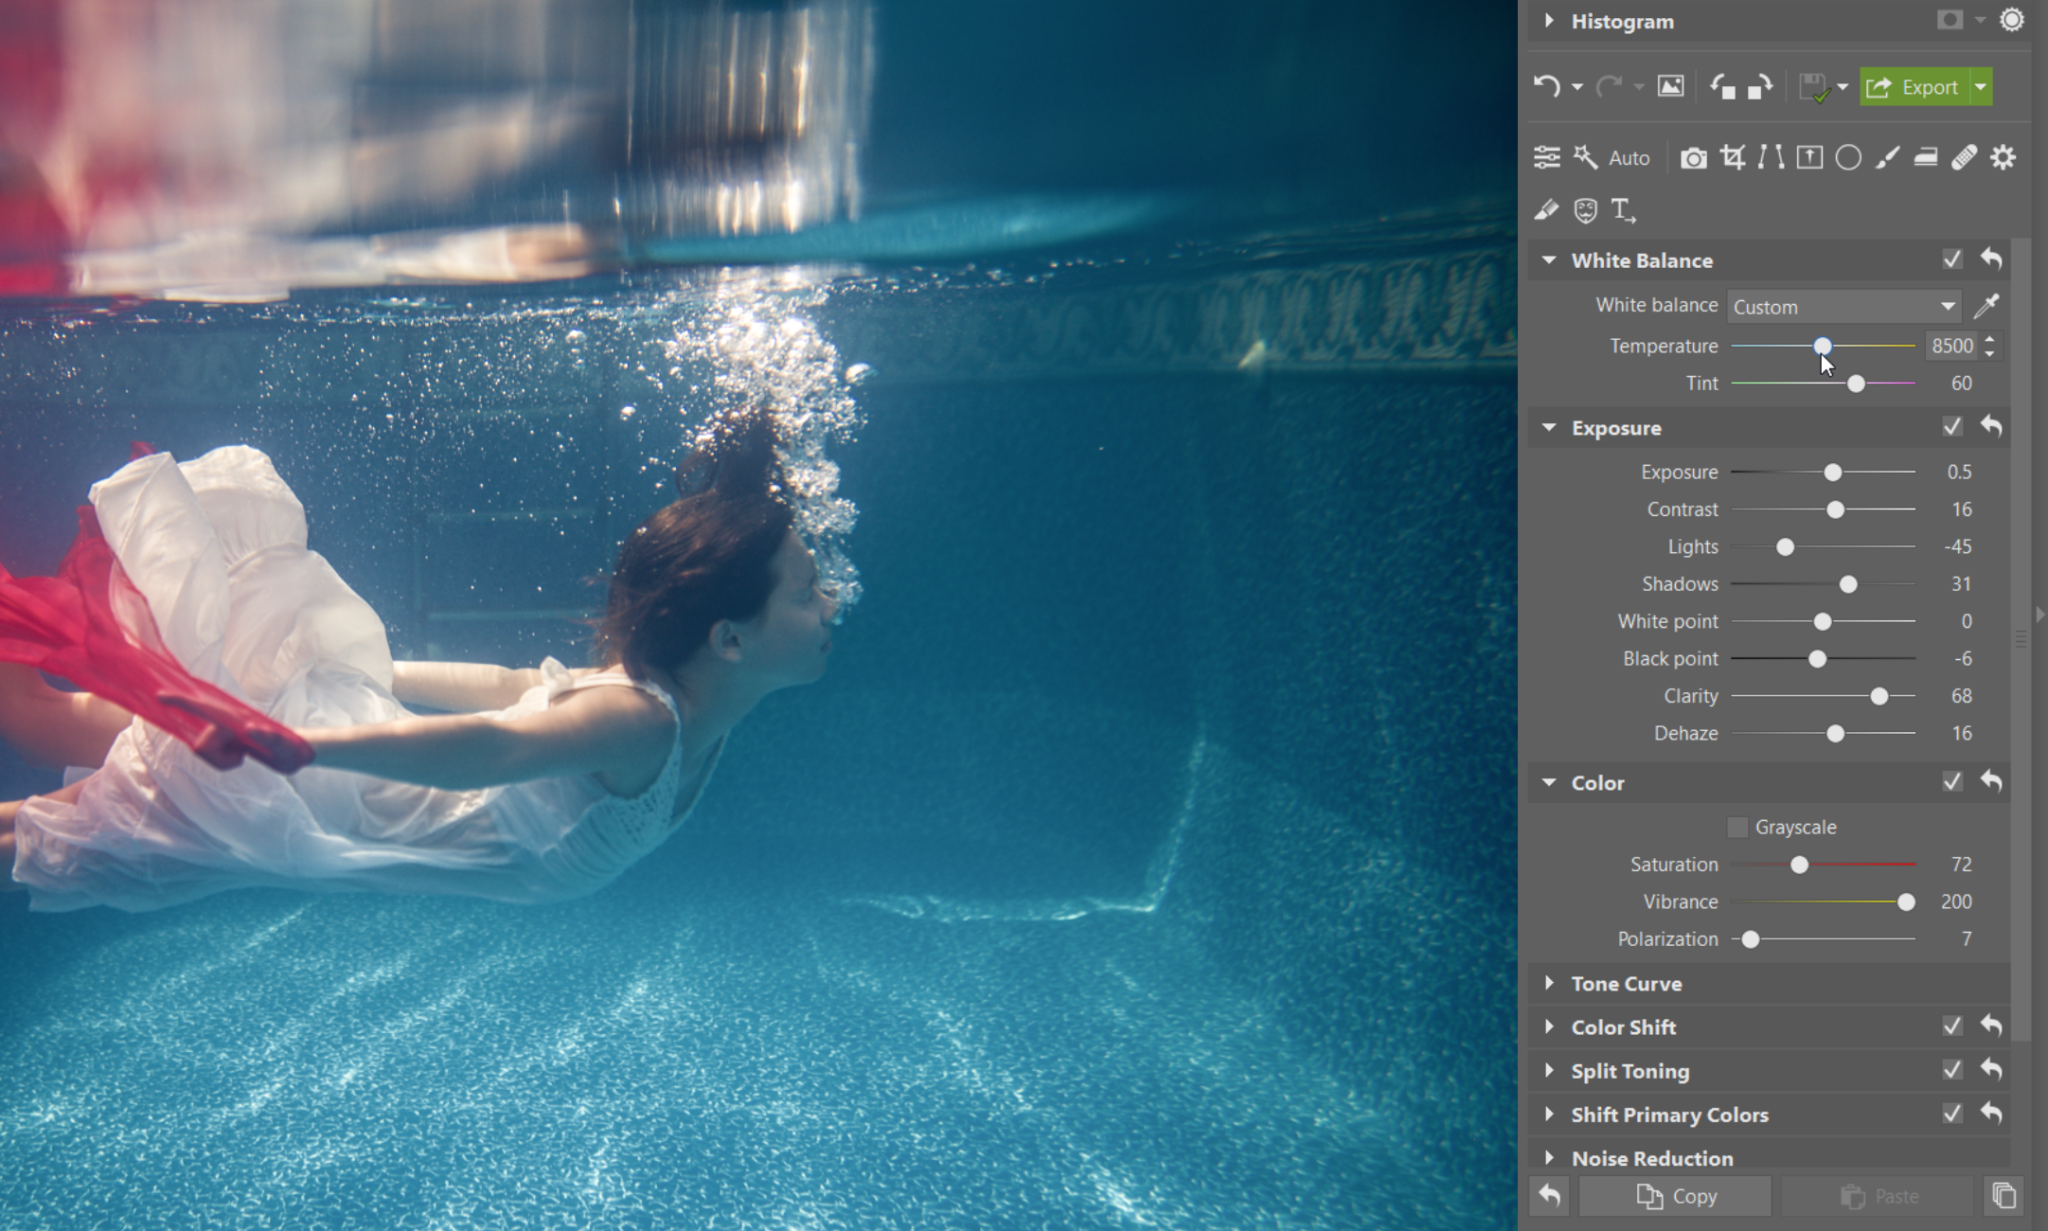 How to Brighten up Your Underwater Photos